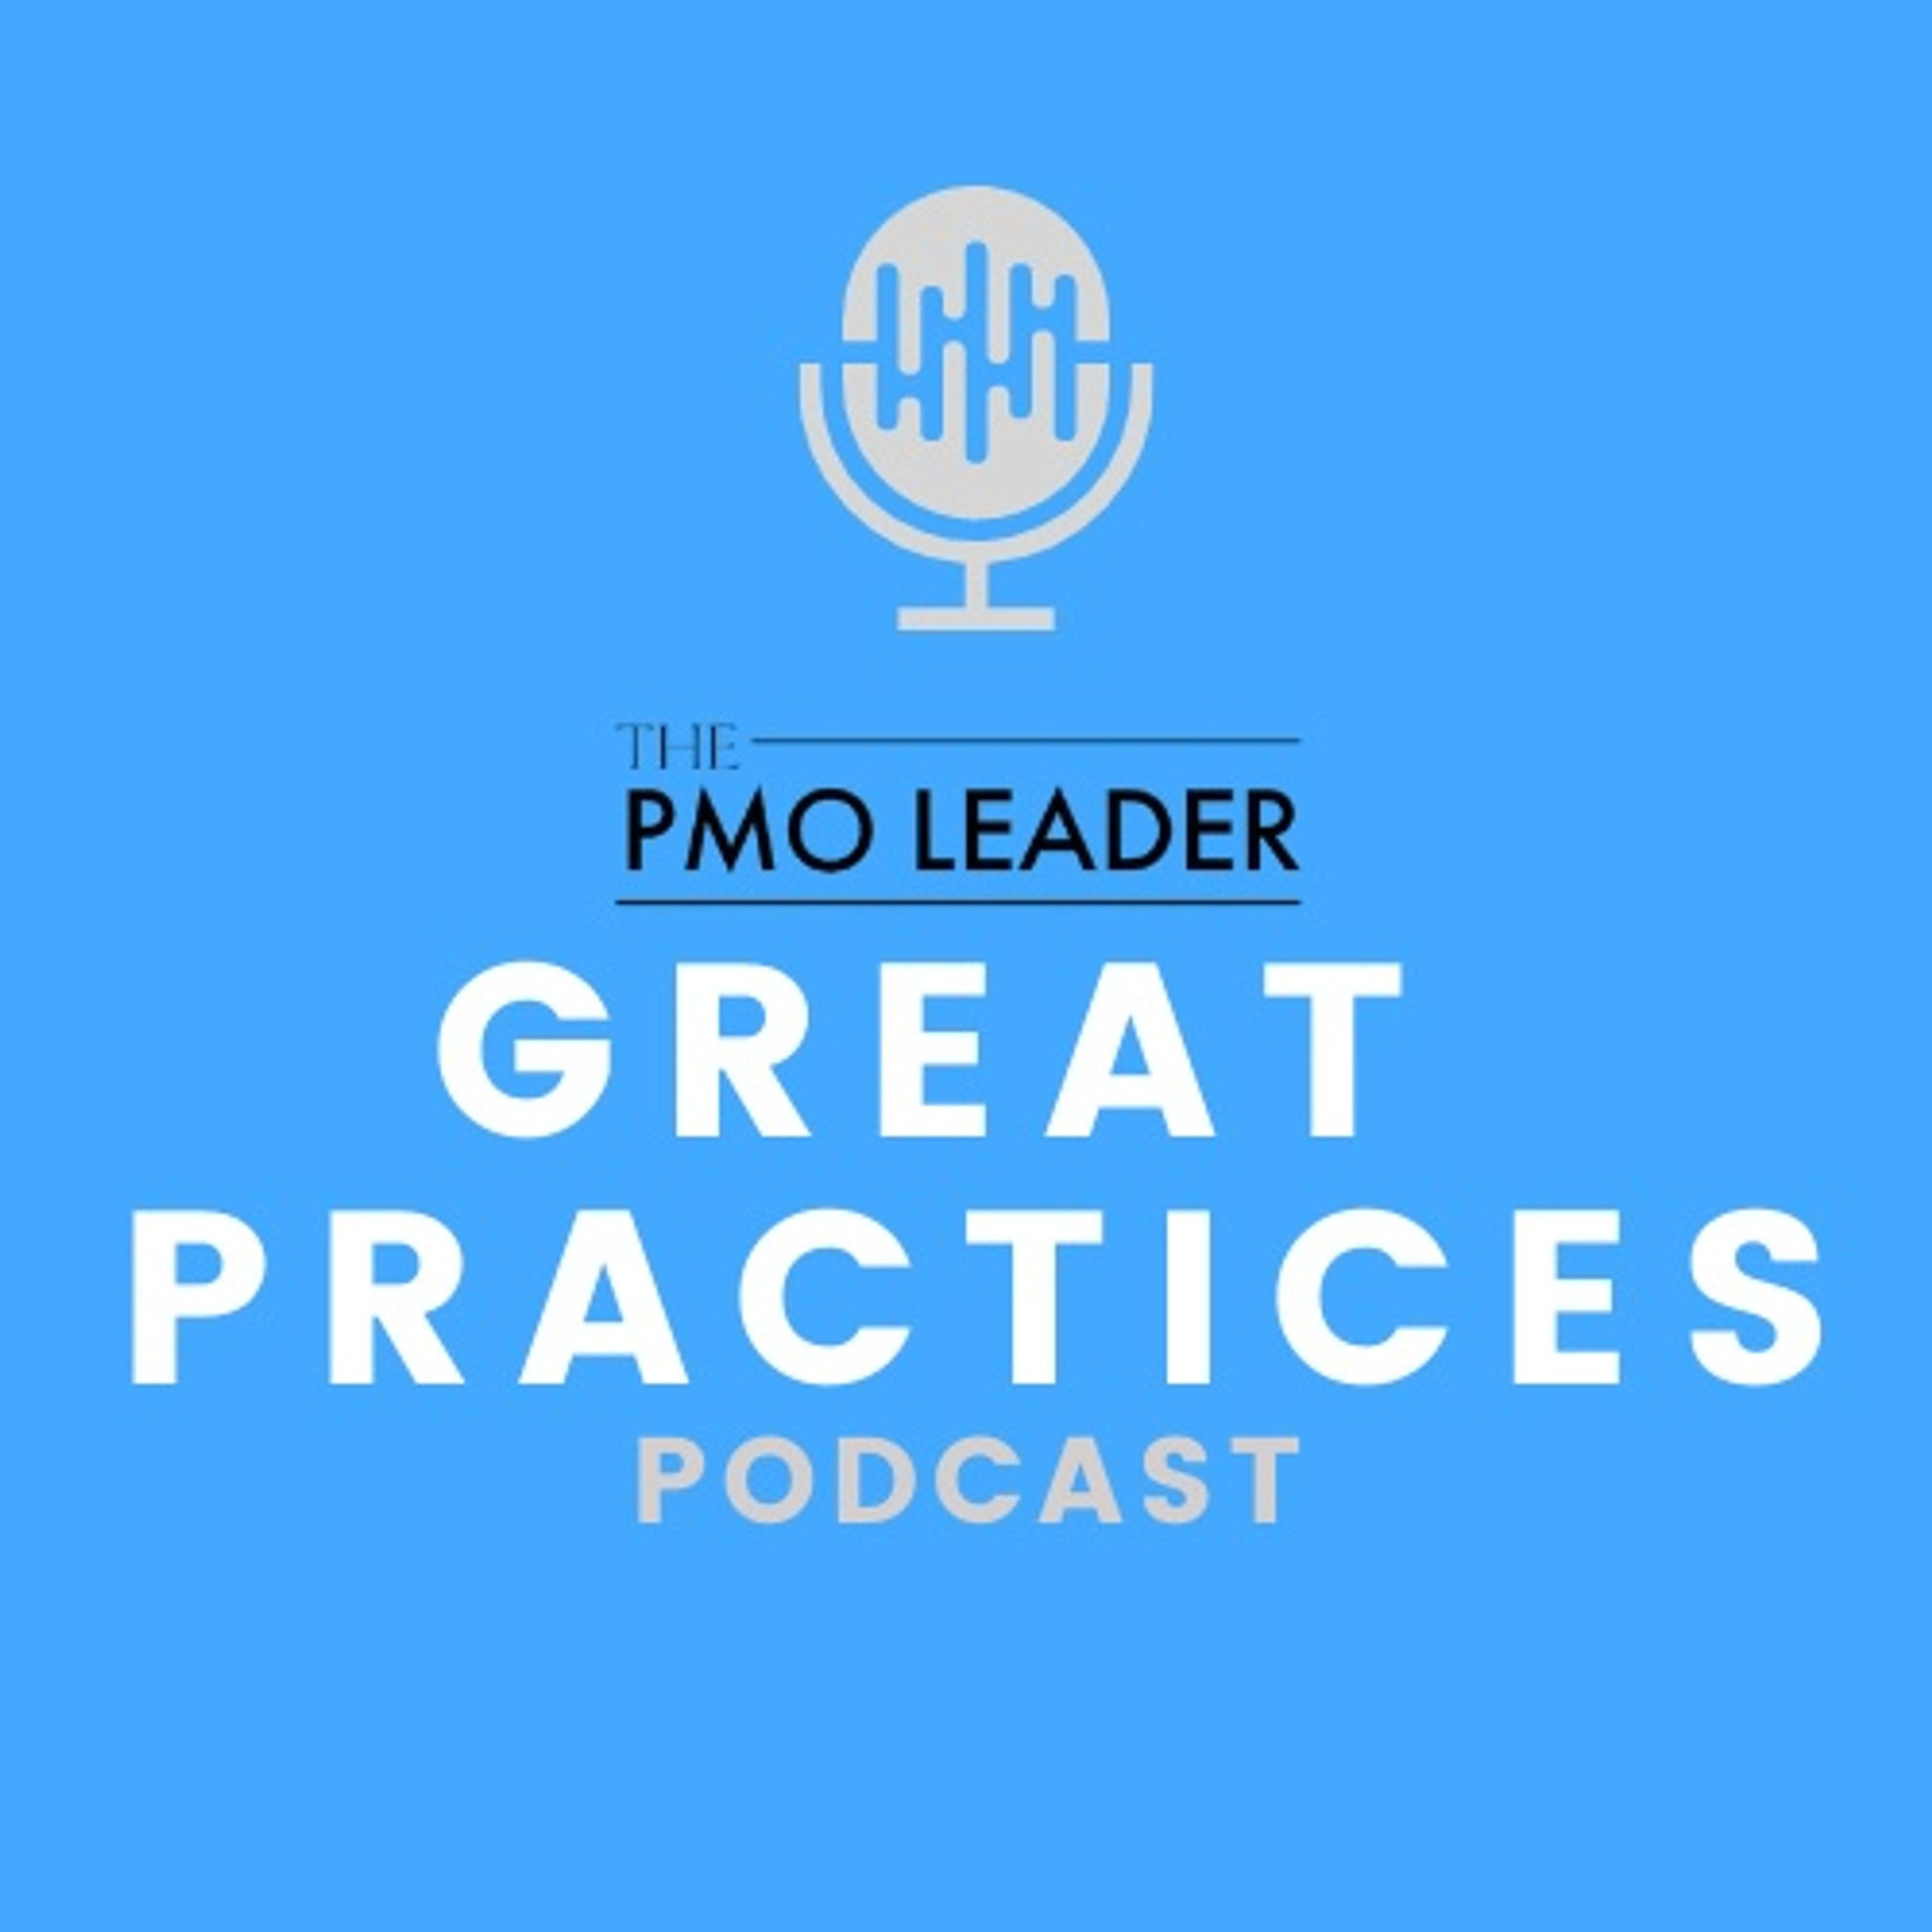 Great Practices